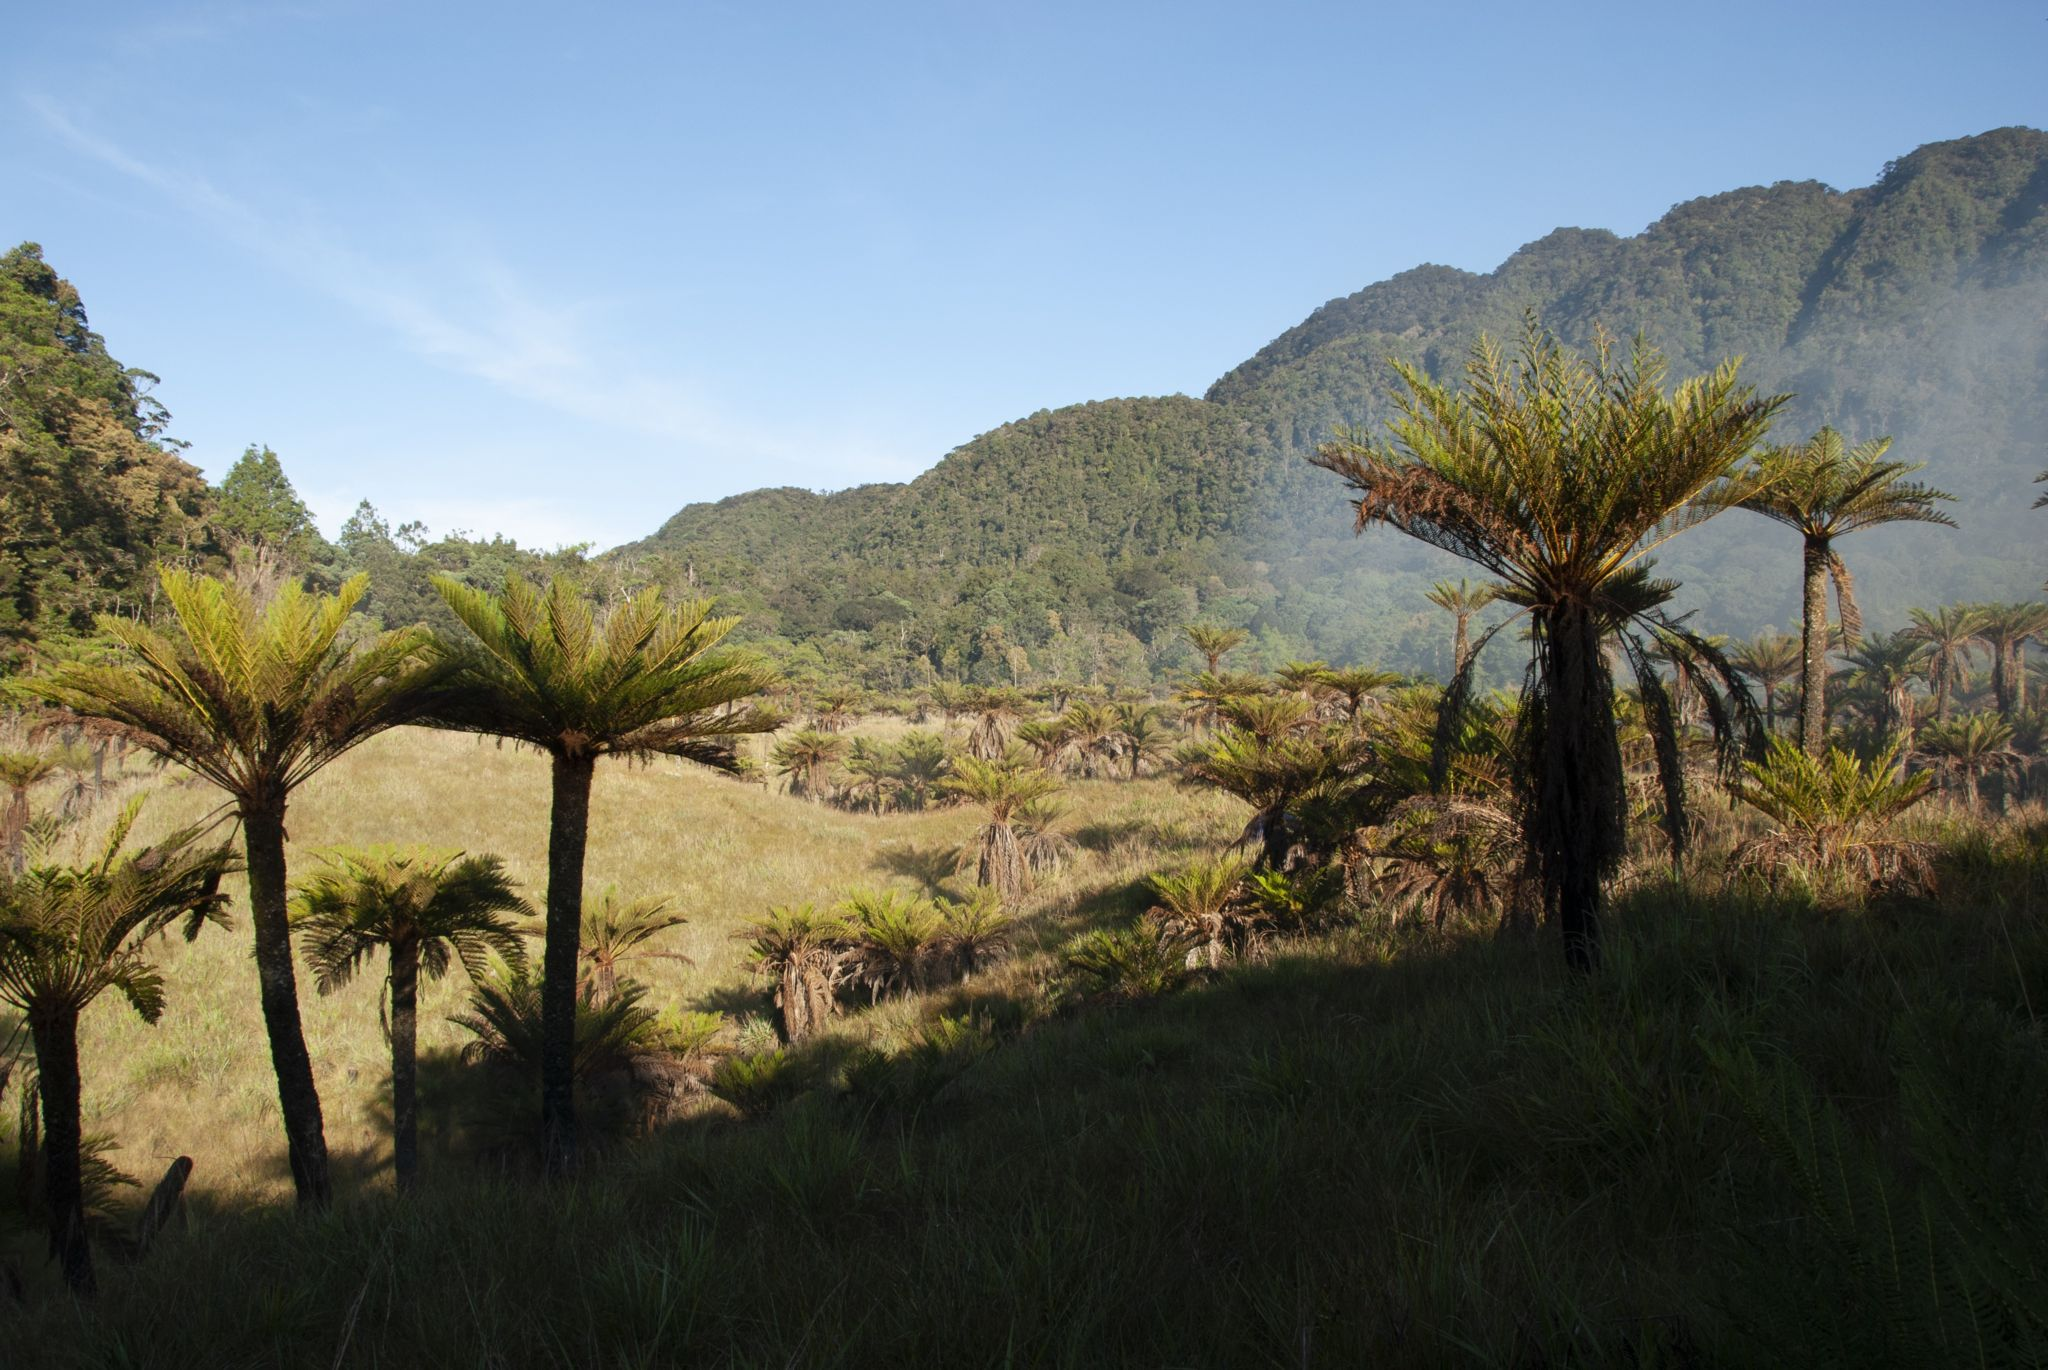 Tree ferns in the Cromwell Mountains of Papua New Guinea